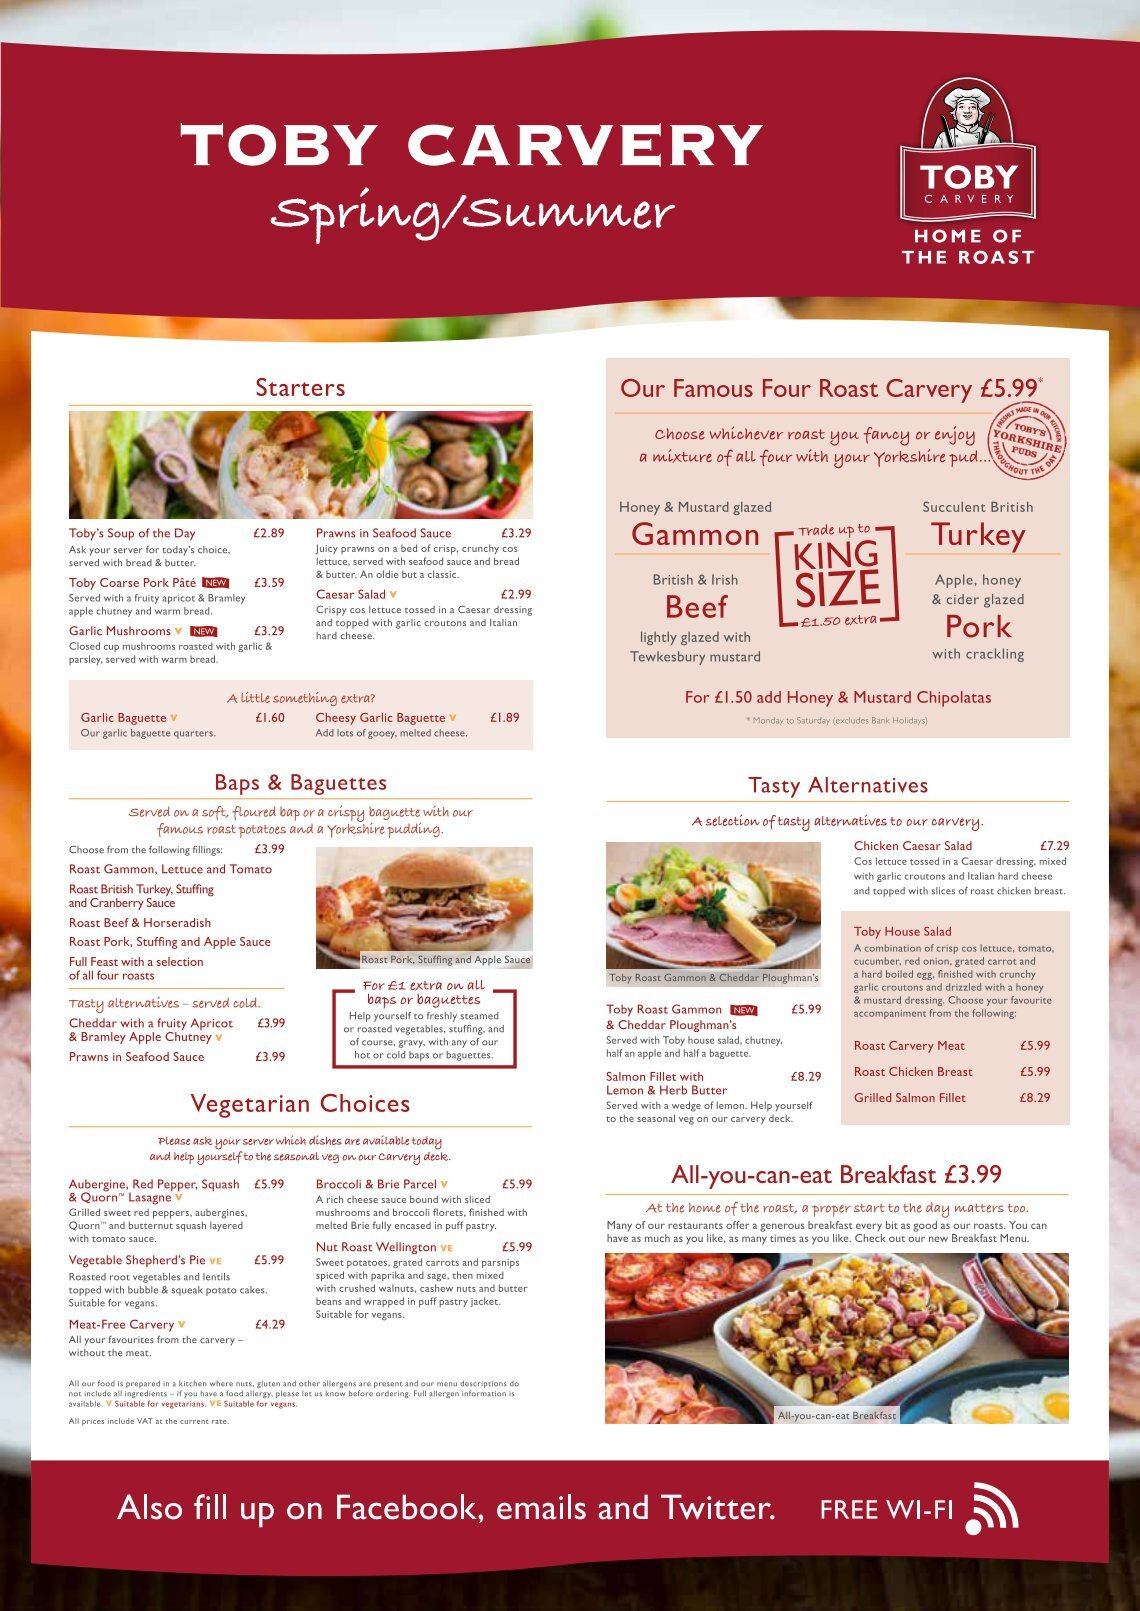 90 free Magazines from TOBYCARVERY.CO.UK